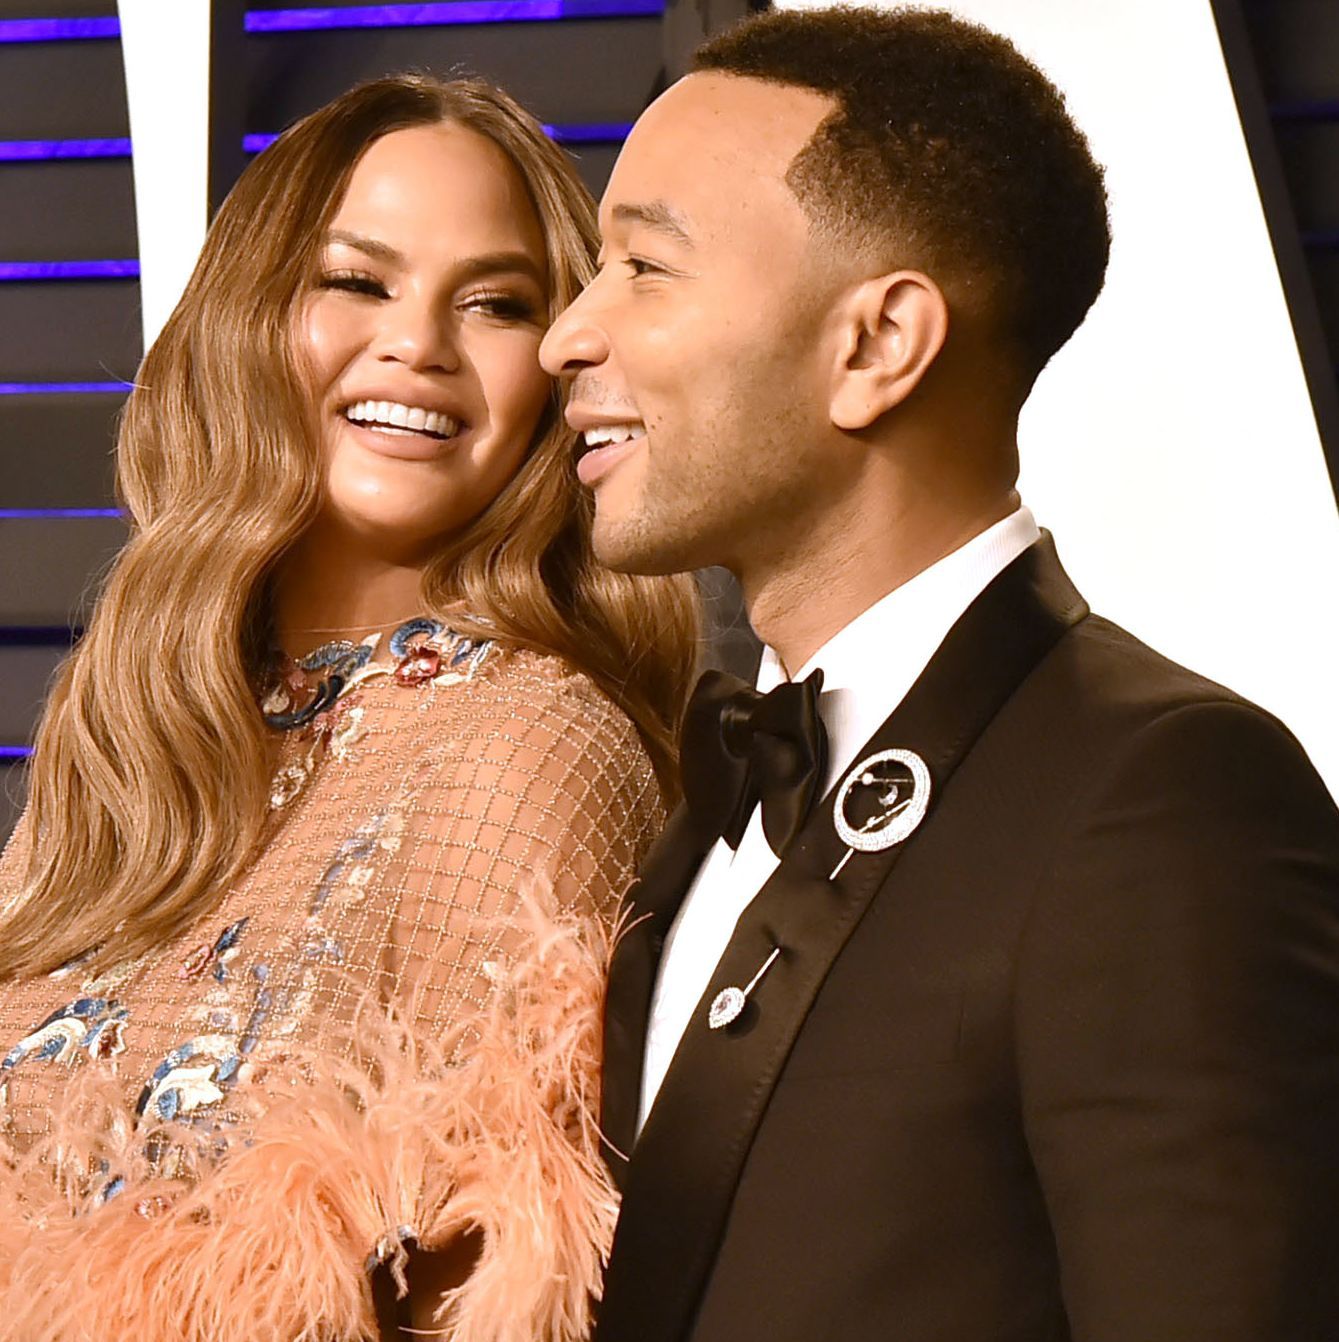 John Legend And Chrissy Teigen's Relationship Is What Social Media Dreams Are Made Of